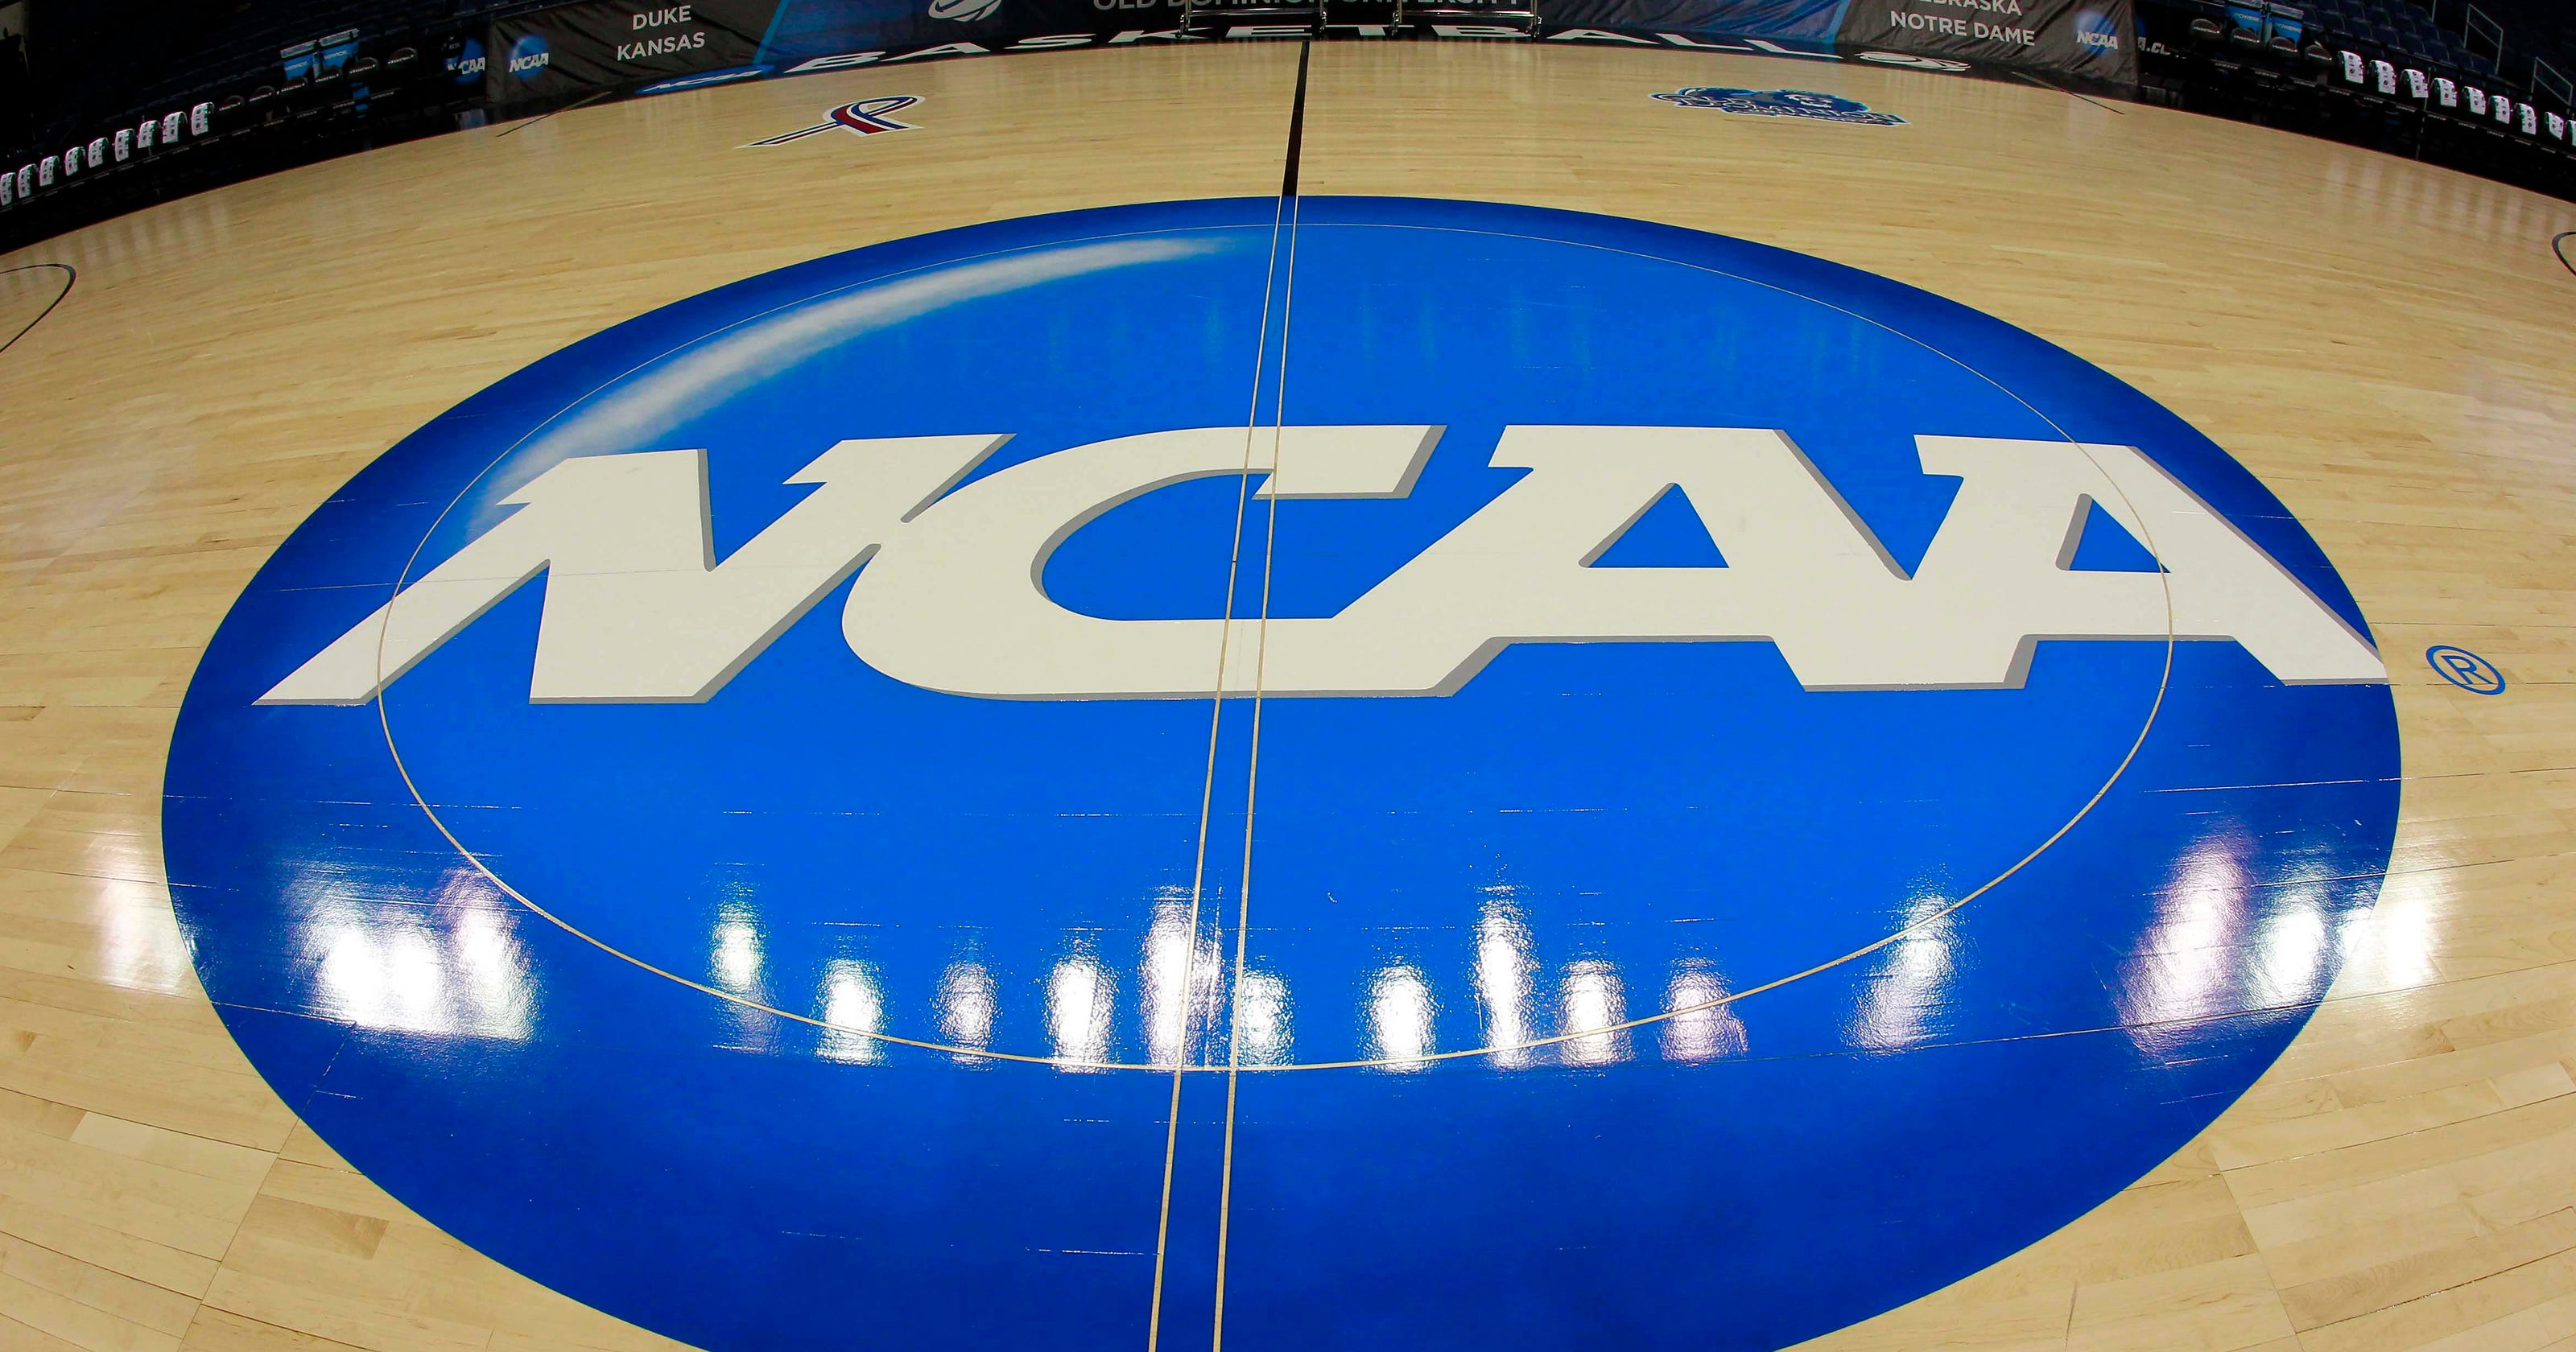 Ncaa Council Votes To Give Student Athletes Unlimited Meals Snacks